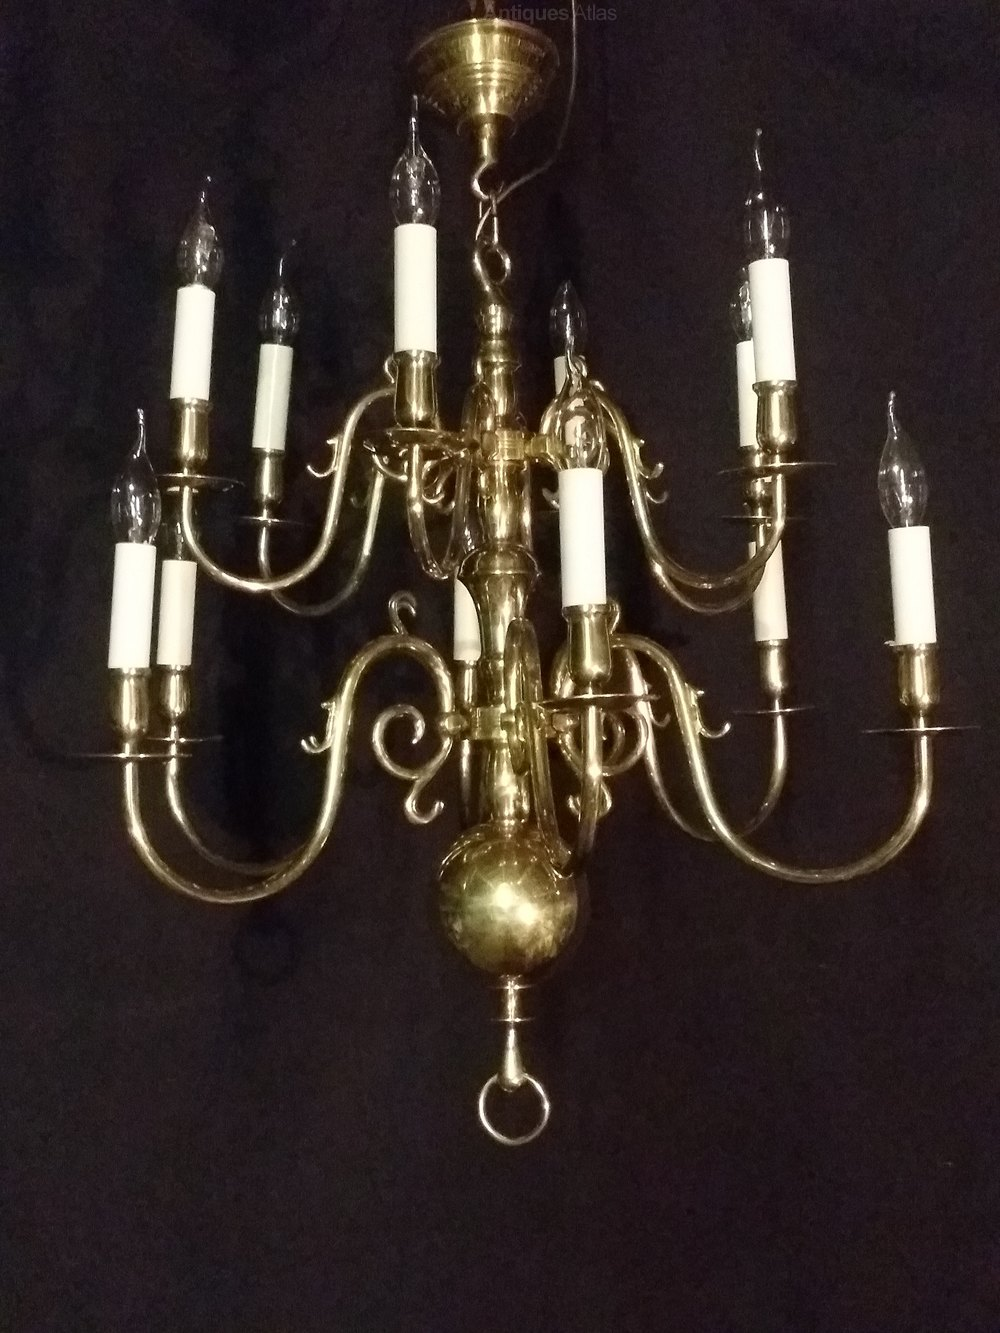 Two tier chandeliers flemish chandeliers this is a very goog quality 2 tier 12 light brass flemish chandelier it is in excellent condition having been sympathically repolished by hand rewired arubaitofo Gallery